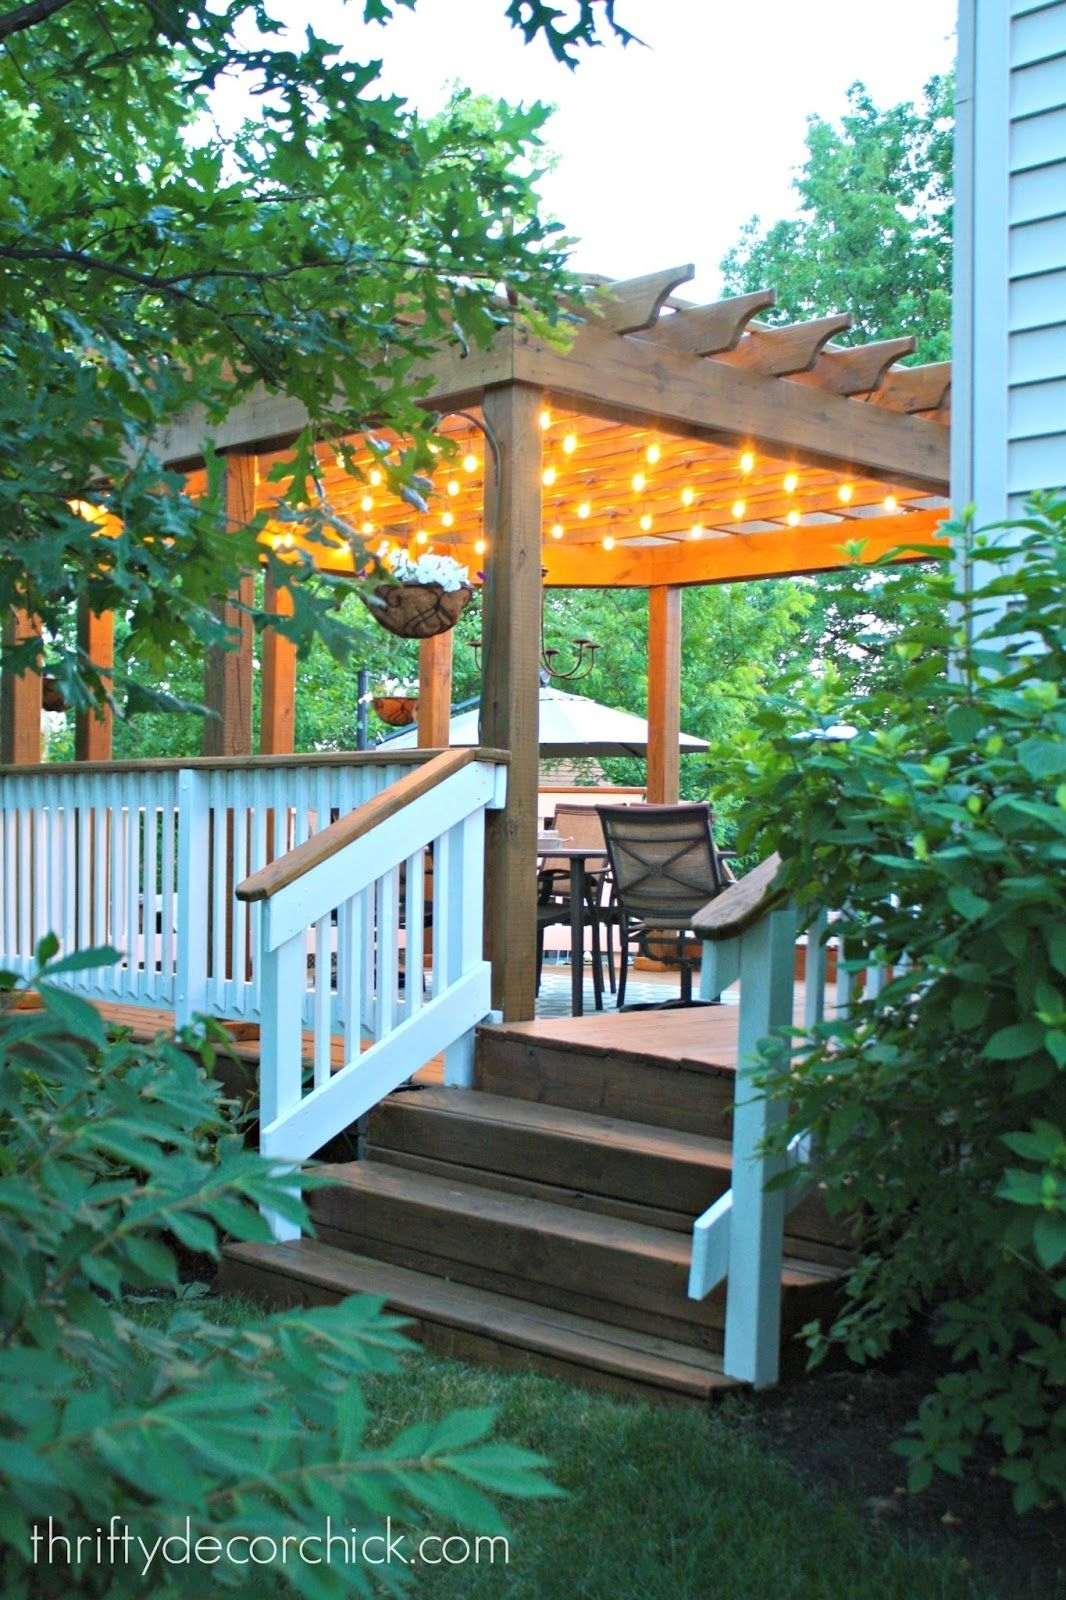 How To Hang Outdoor String Lights | Pergolas, Lights And Decking with regard to Outdoor Lanterns for Deck (Image 11 of 20)